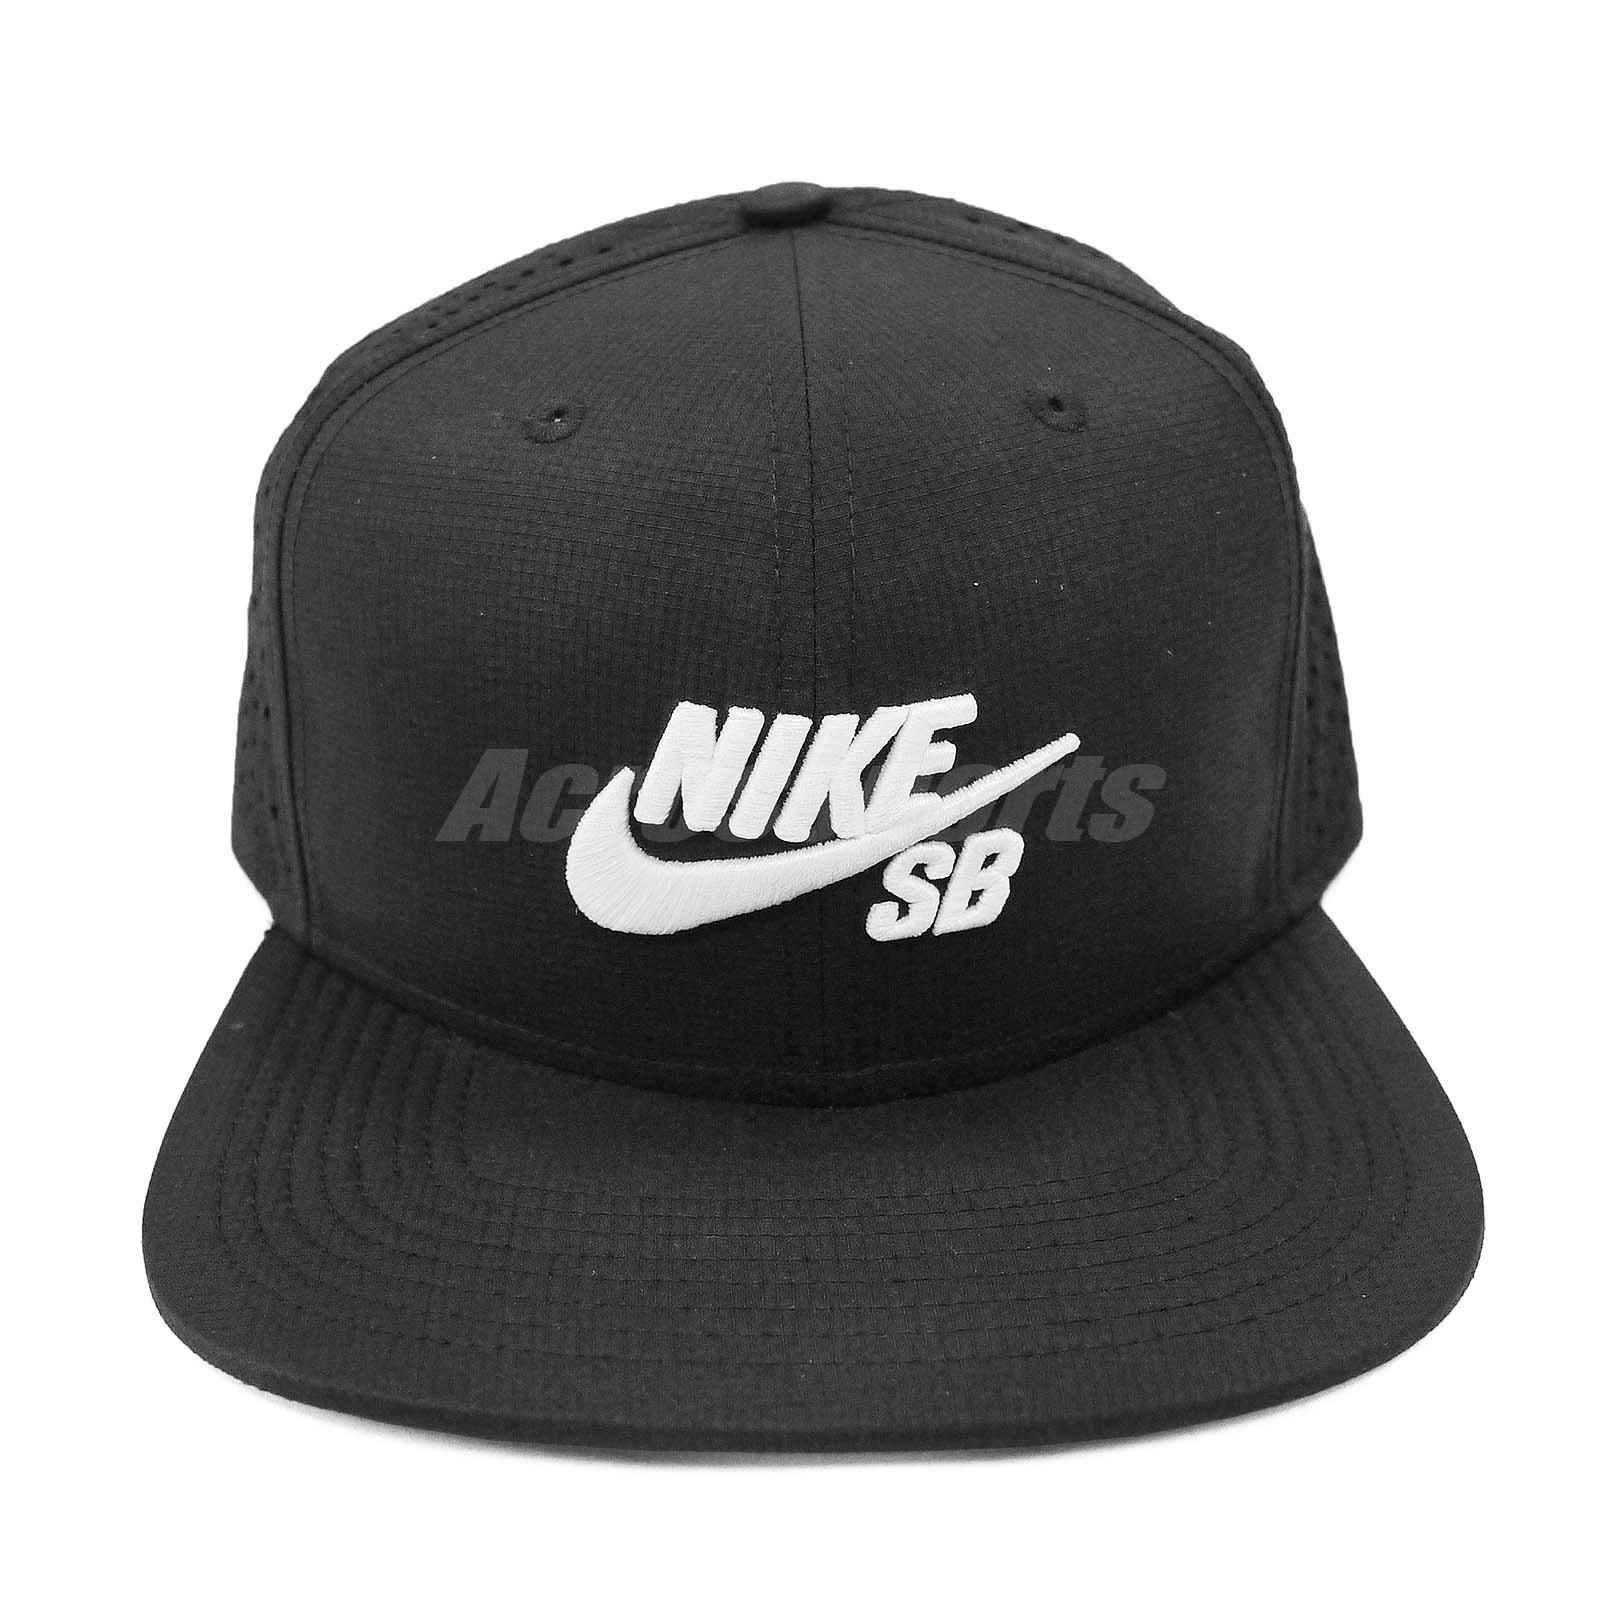 Nike SB Performance Black White Embroidery Mens Trucker Hat Cap ... 10d1fa24b22